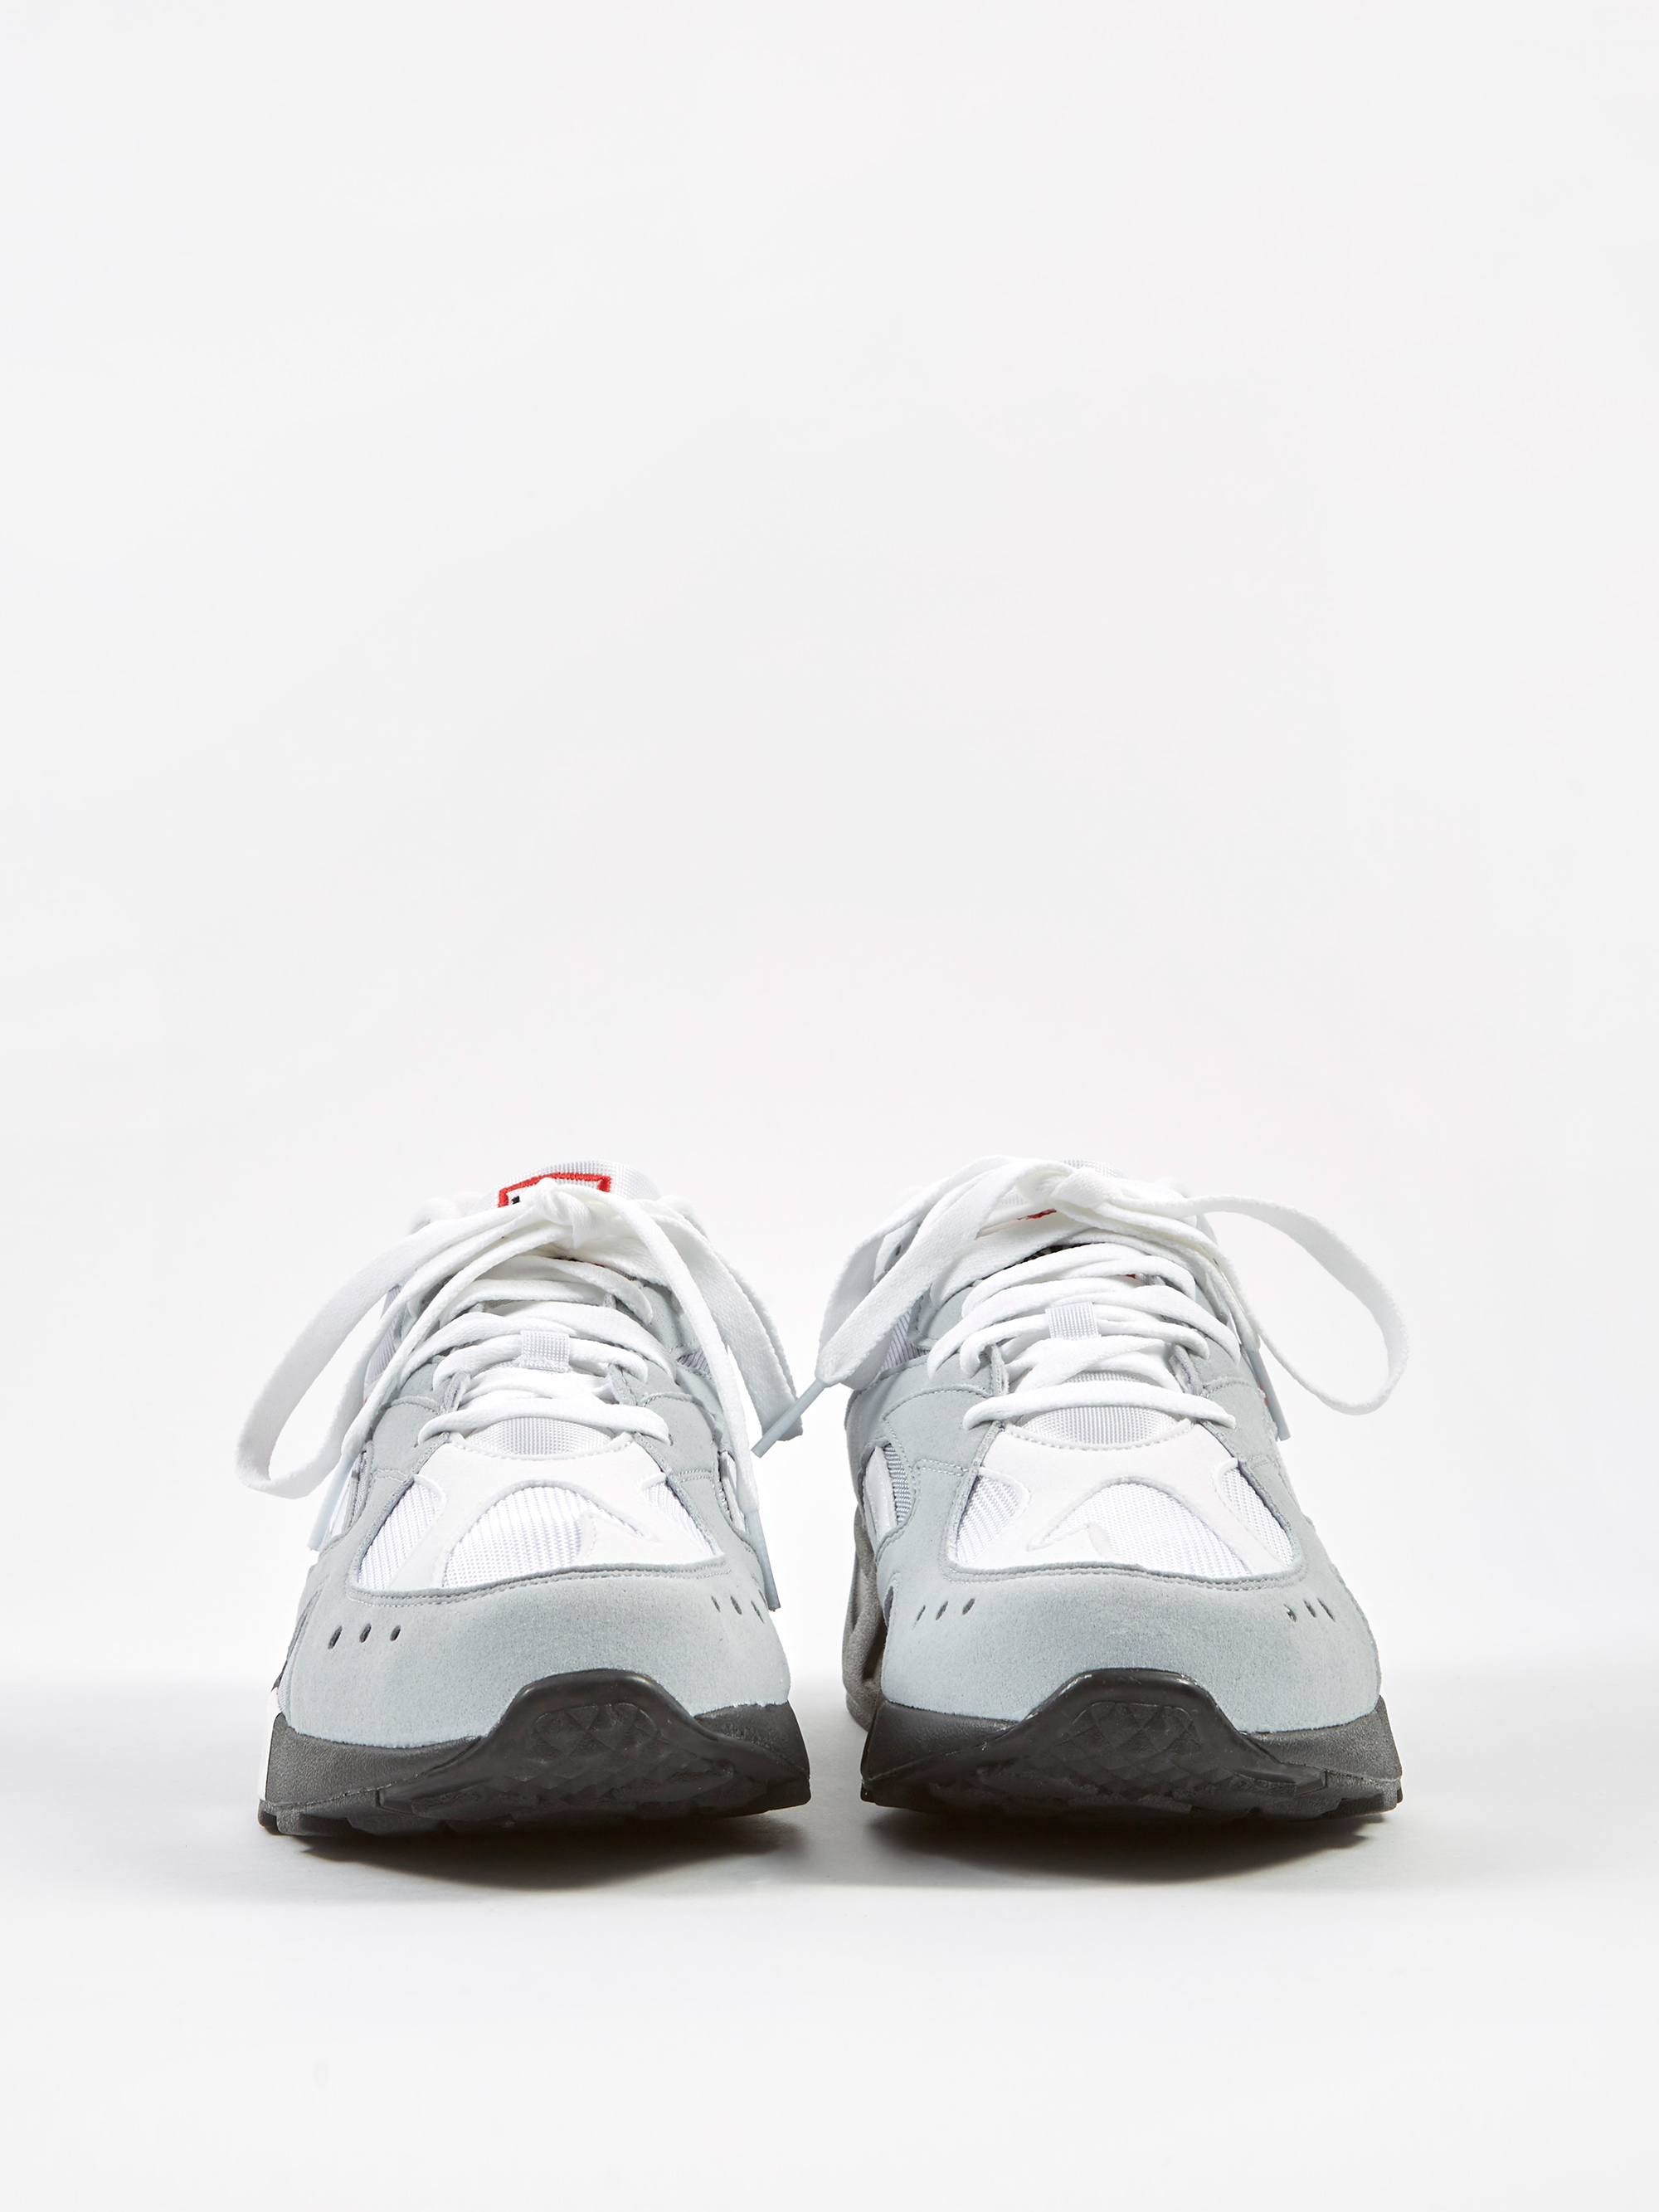 cab19a7ccf1 Reebok x Have A Good Time Aztrek - Cool Shadow Cold Grey White